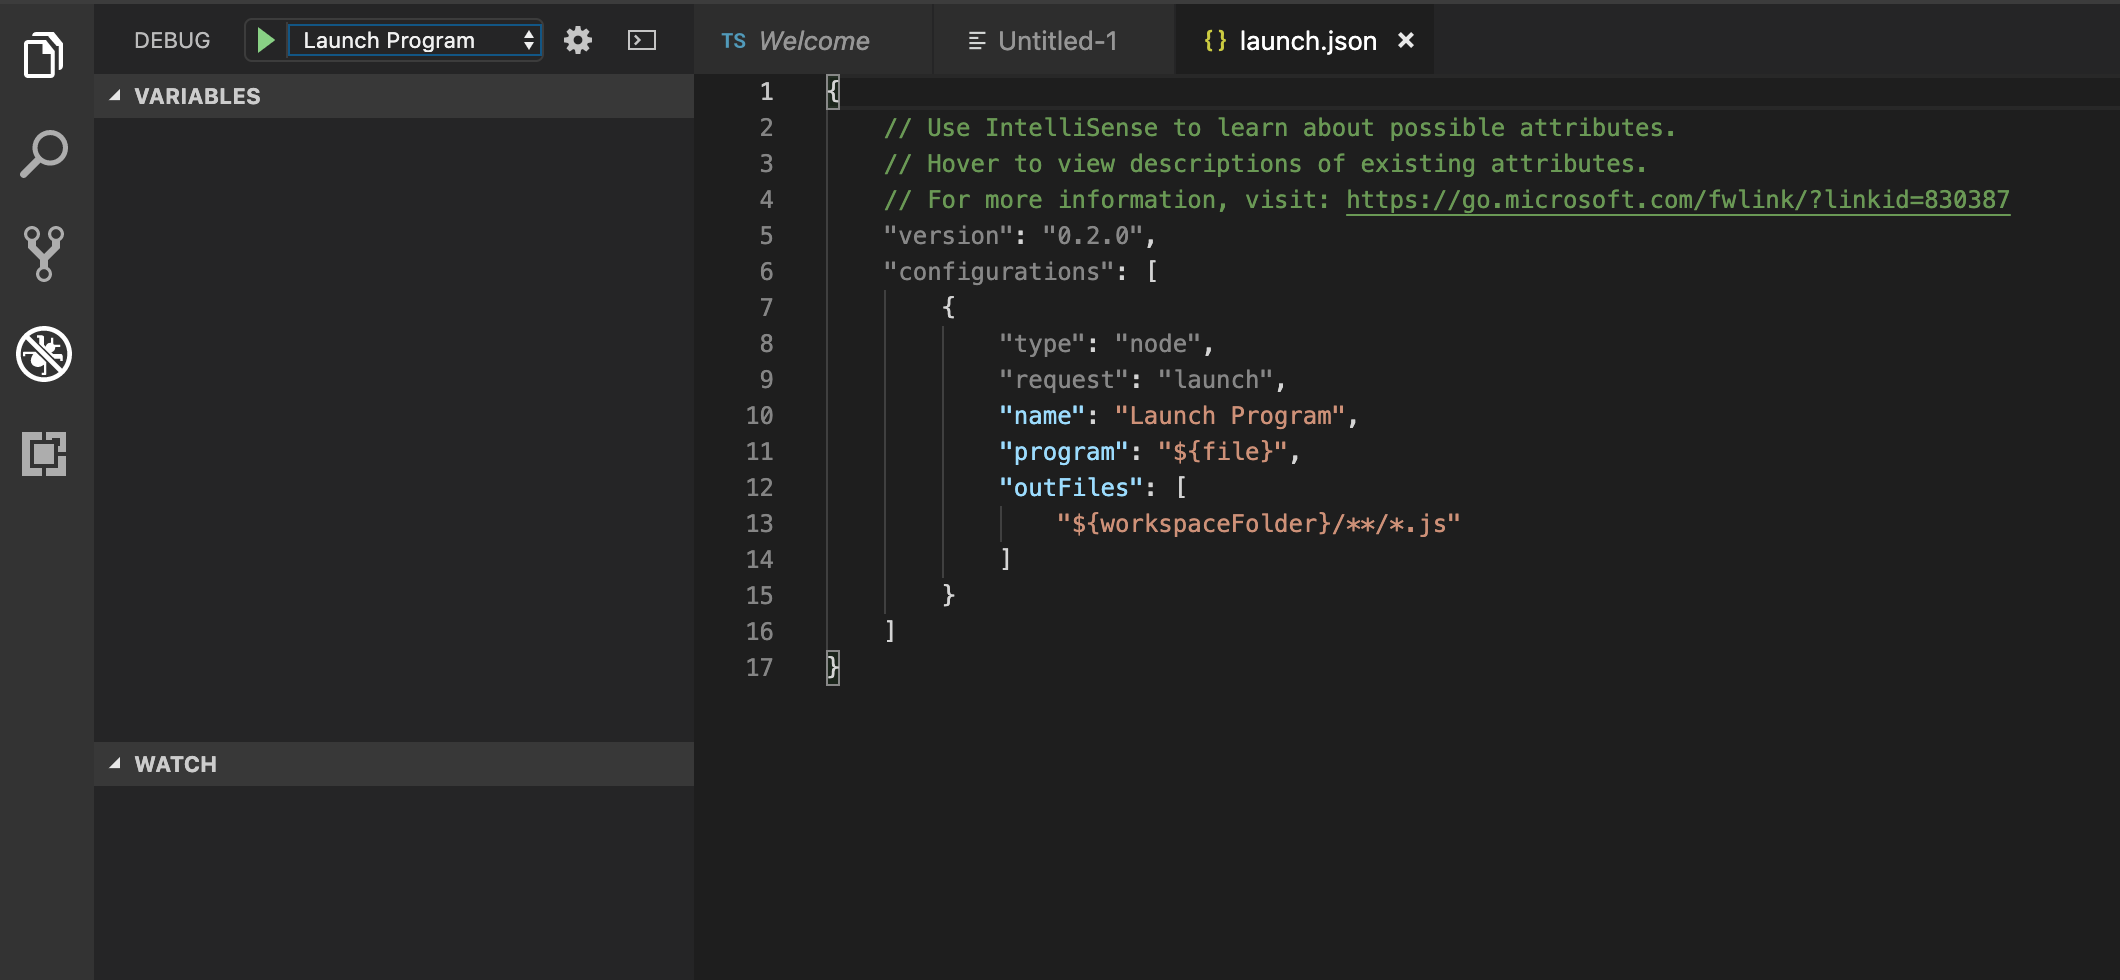 Debugger View with launch.json open